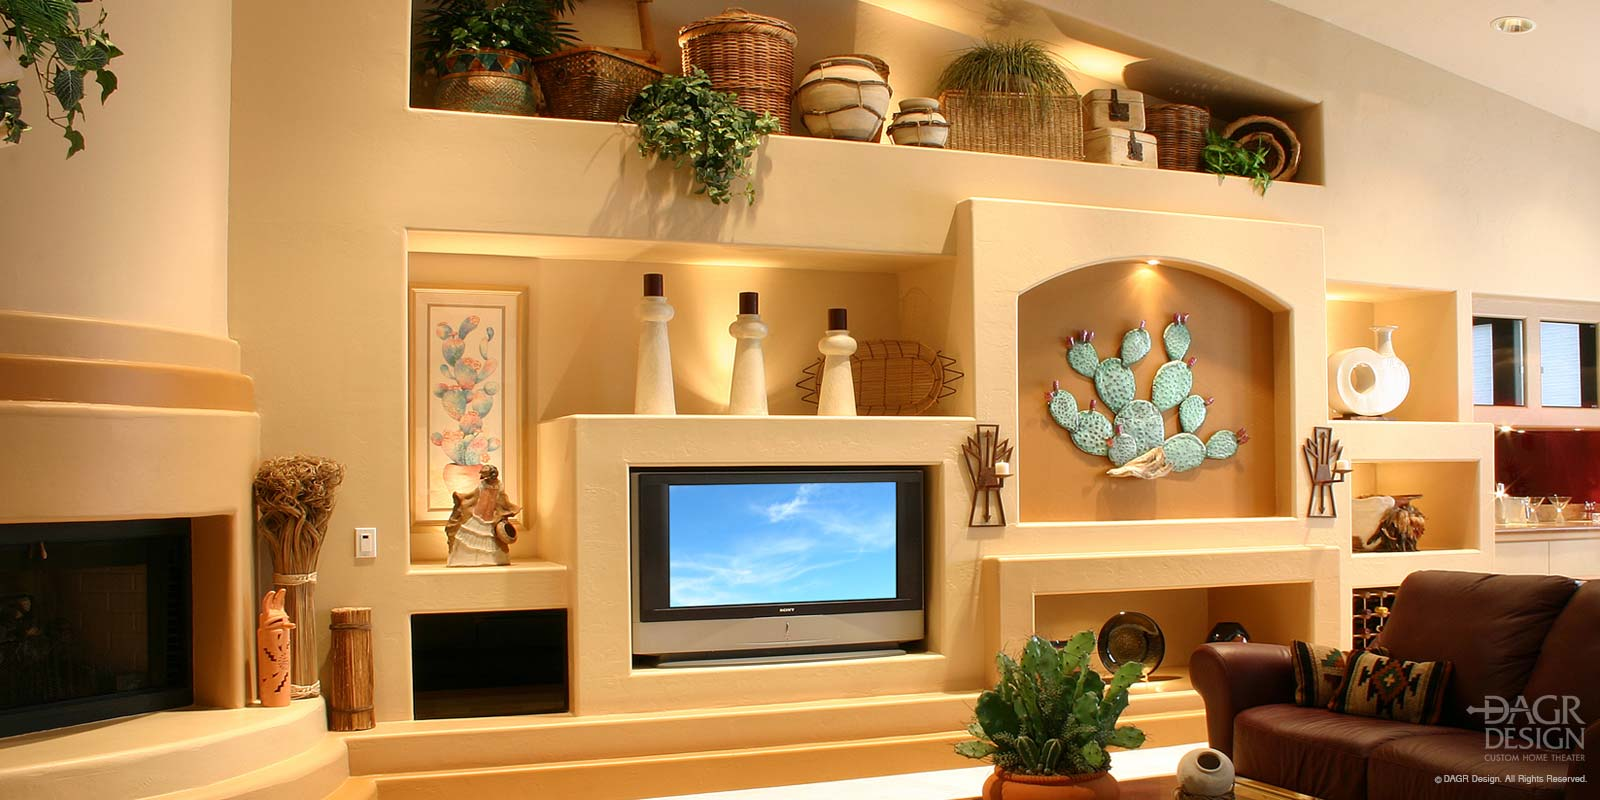 Southwest style custom media wall design with fireplace, decorative lighted niches, plant shelf, and inset LCD tv custom designed and installed by DAGR Design